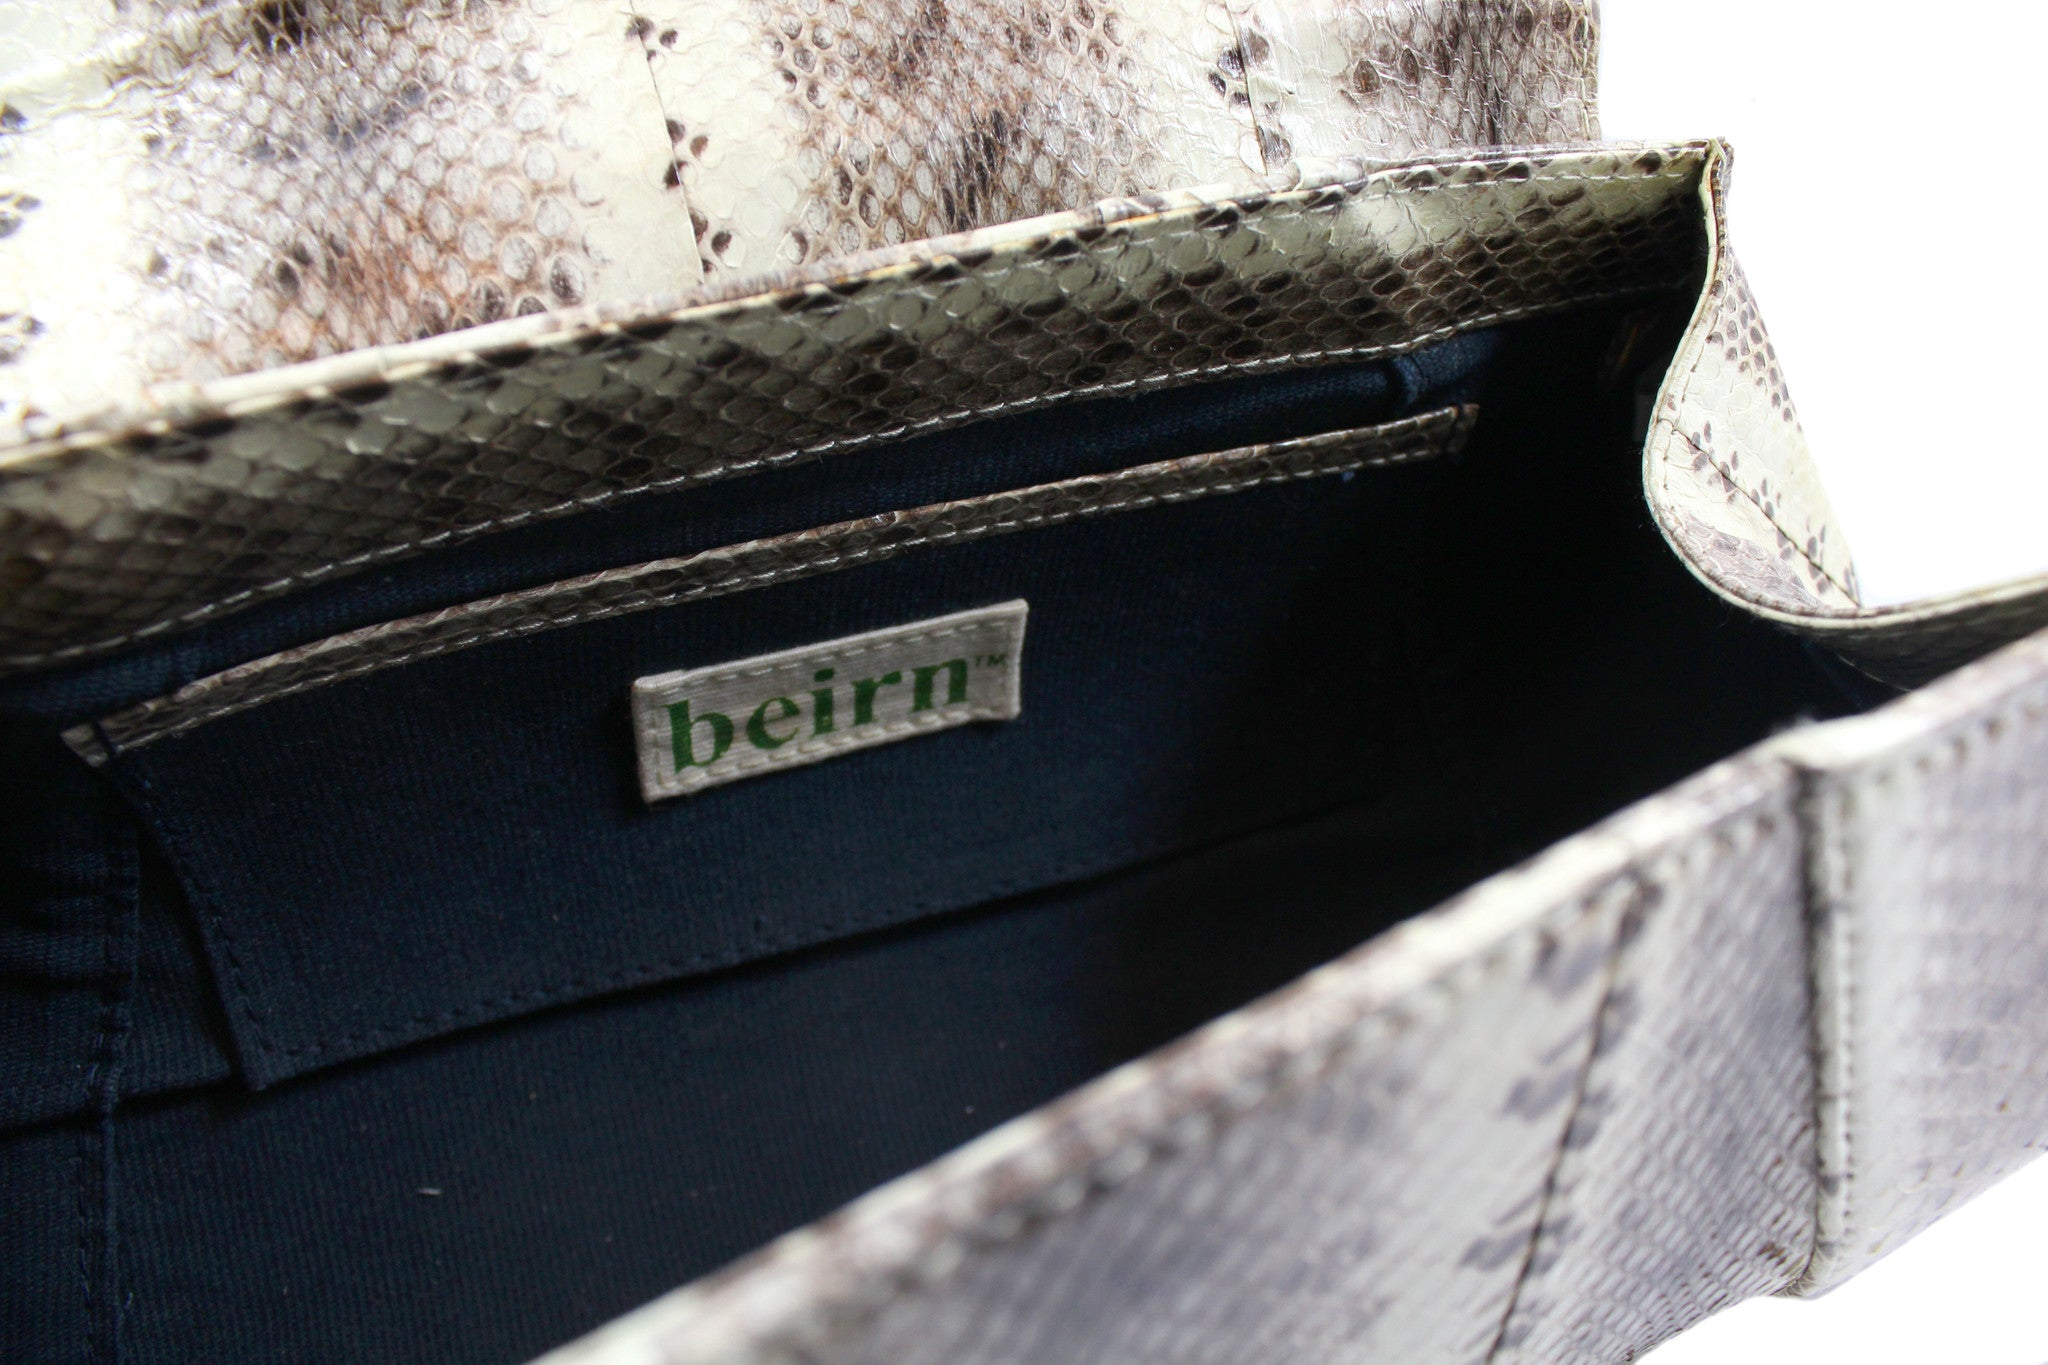 Beirn Large Snakeskin Clutch - Encore Consignment - 5